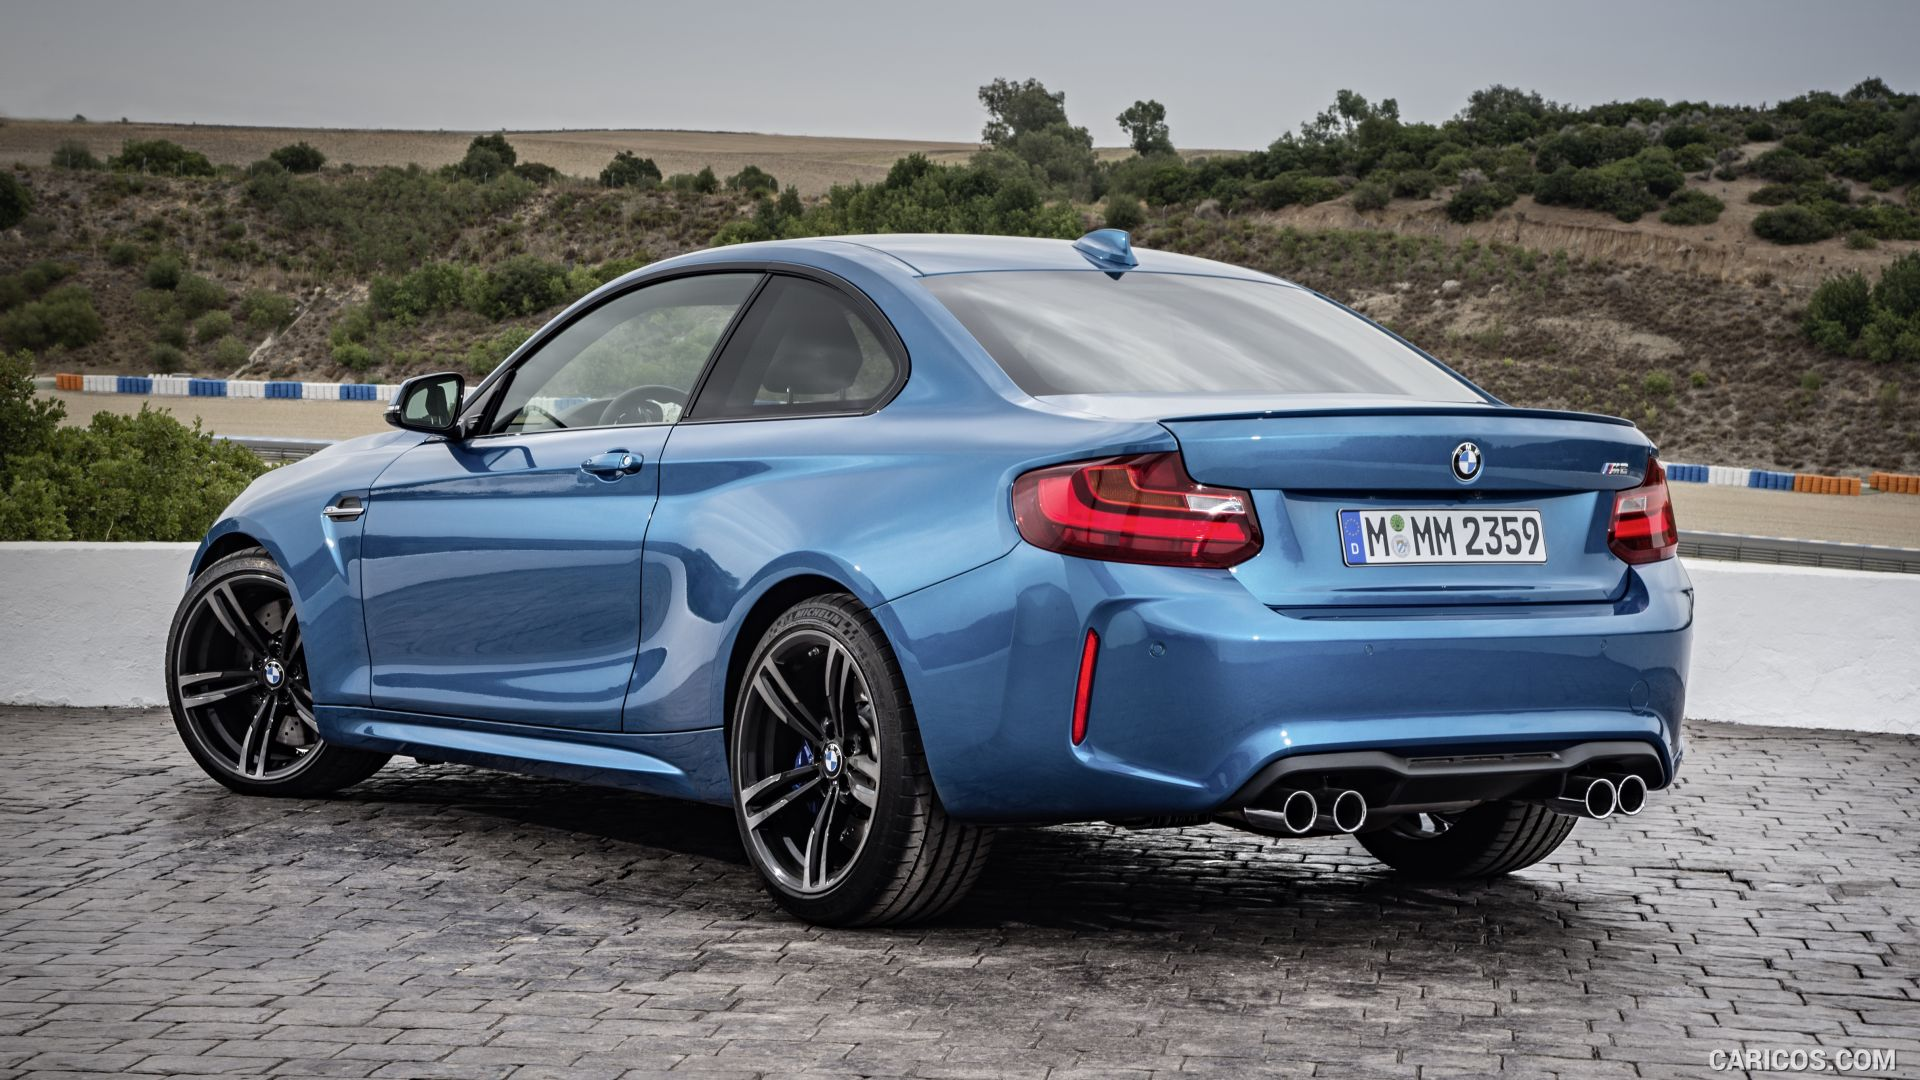 Gorgeous BMW M2 Wallpaper Full HD Pictures 1920x1080